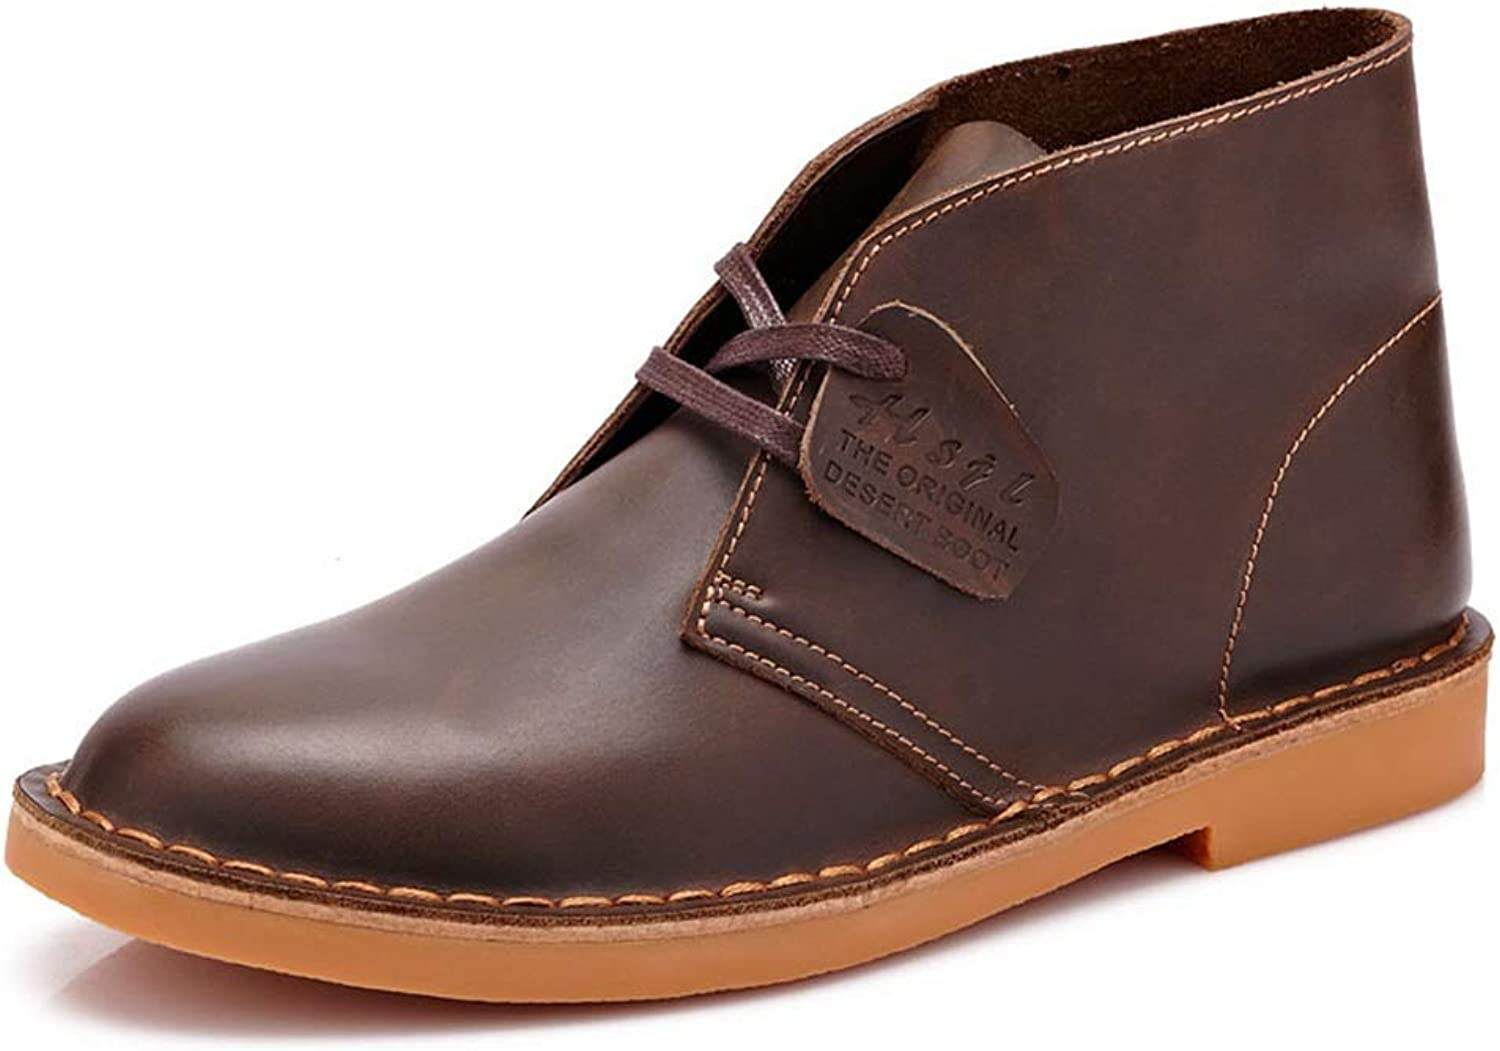 ZHRUI Mens Classic Chukka Boots Soft Sole Non Slip Genuine Leather Casual Ankel Boots (color   Brown, Size   UK 9)